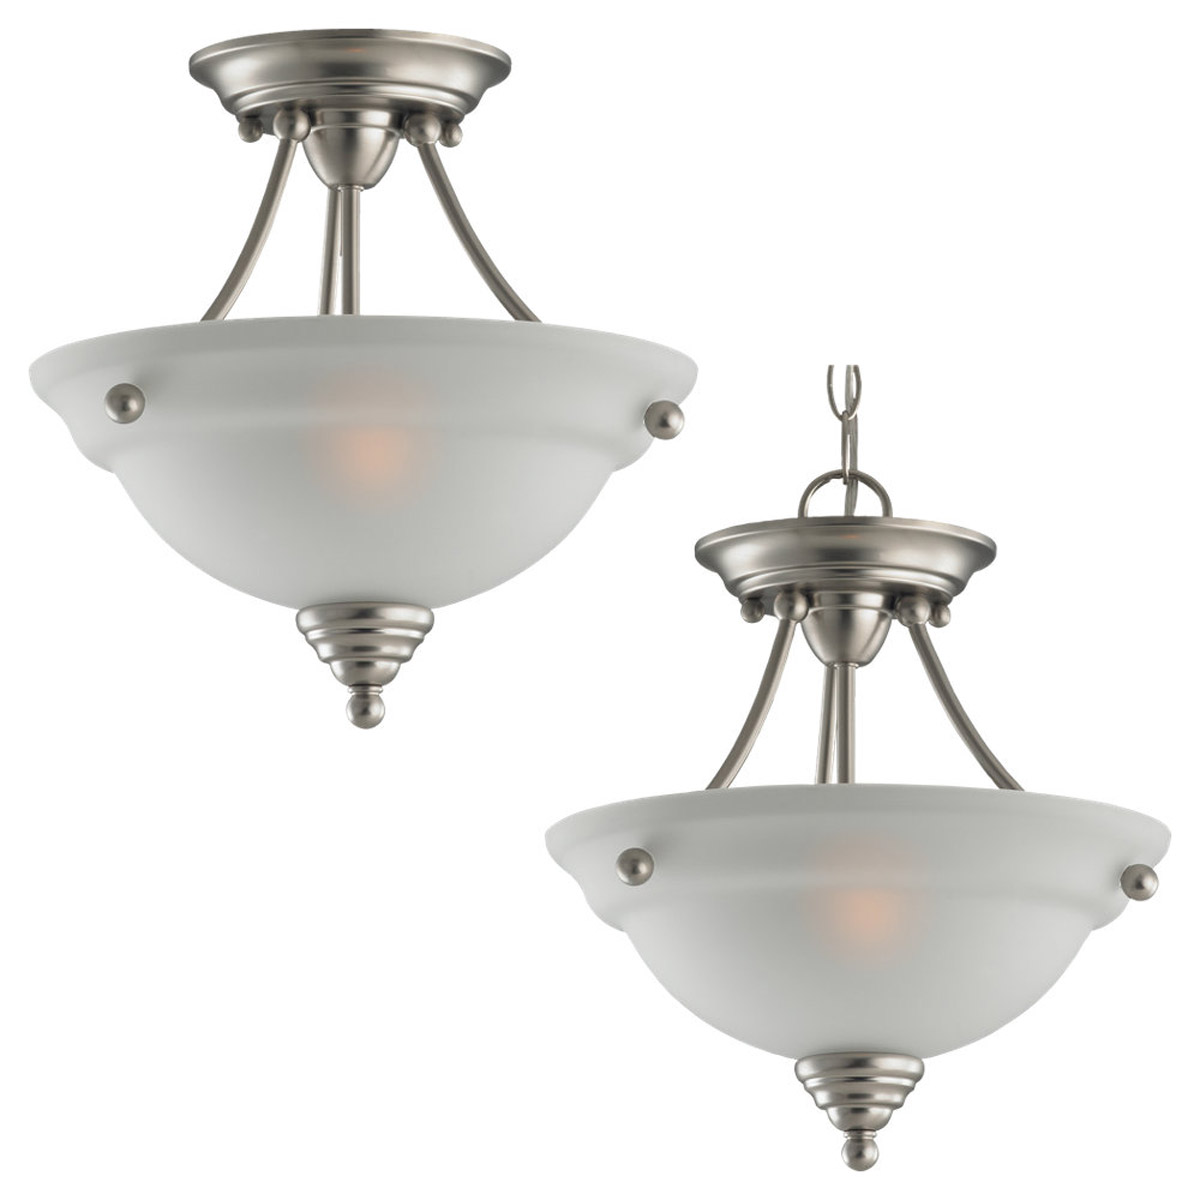 Sea Gull 77575-962 Albany 2 Light 12 inch Brushed Nickel Semi-Flush Mount Ceiling Light photo